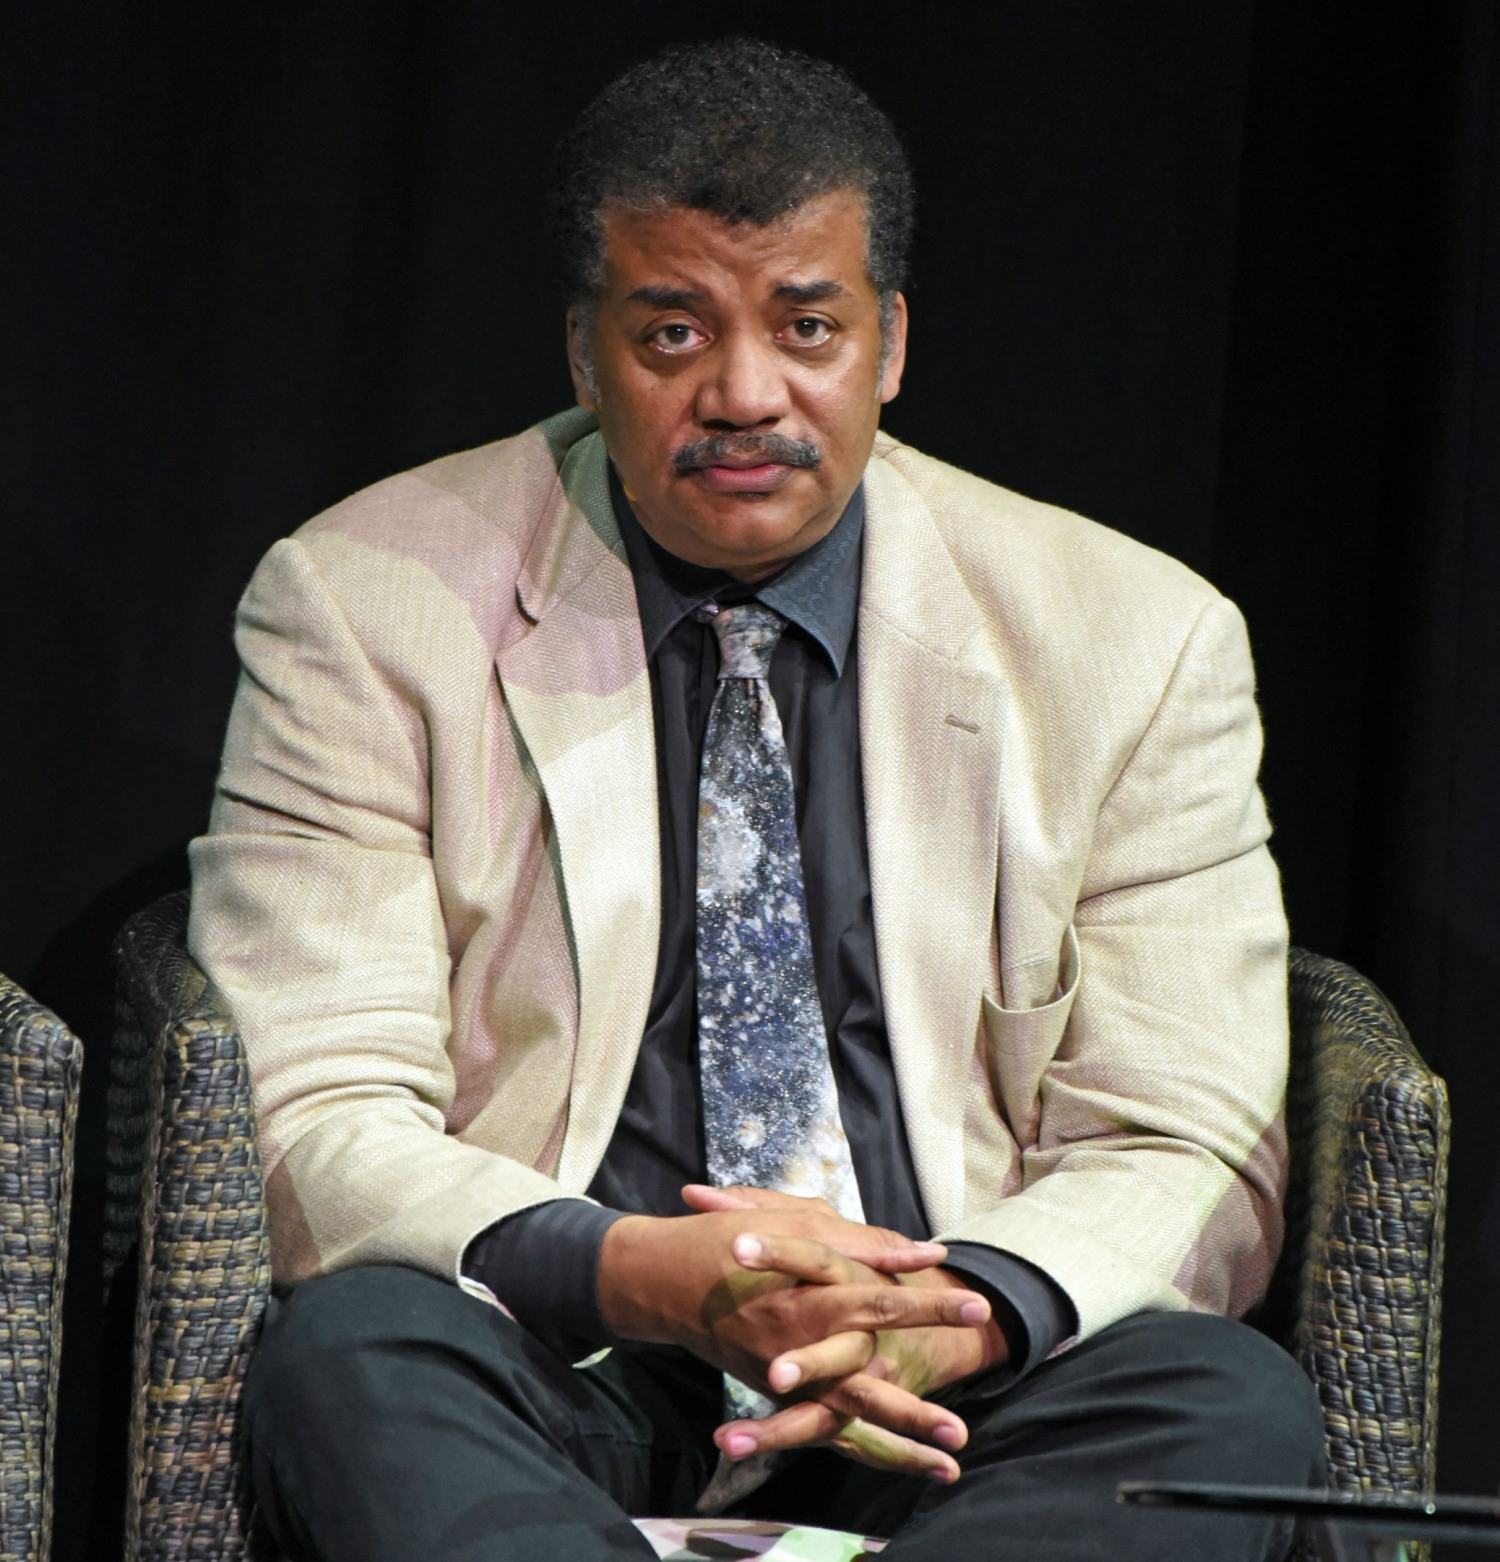 Neil deGrasse Tyson 'welcomes' investigations into his alleged sexual harassment